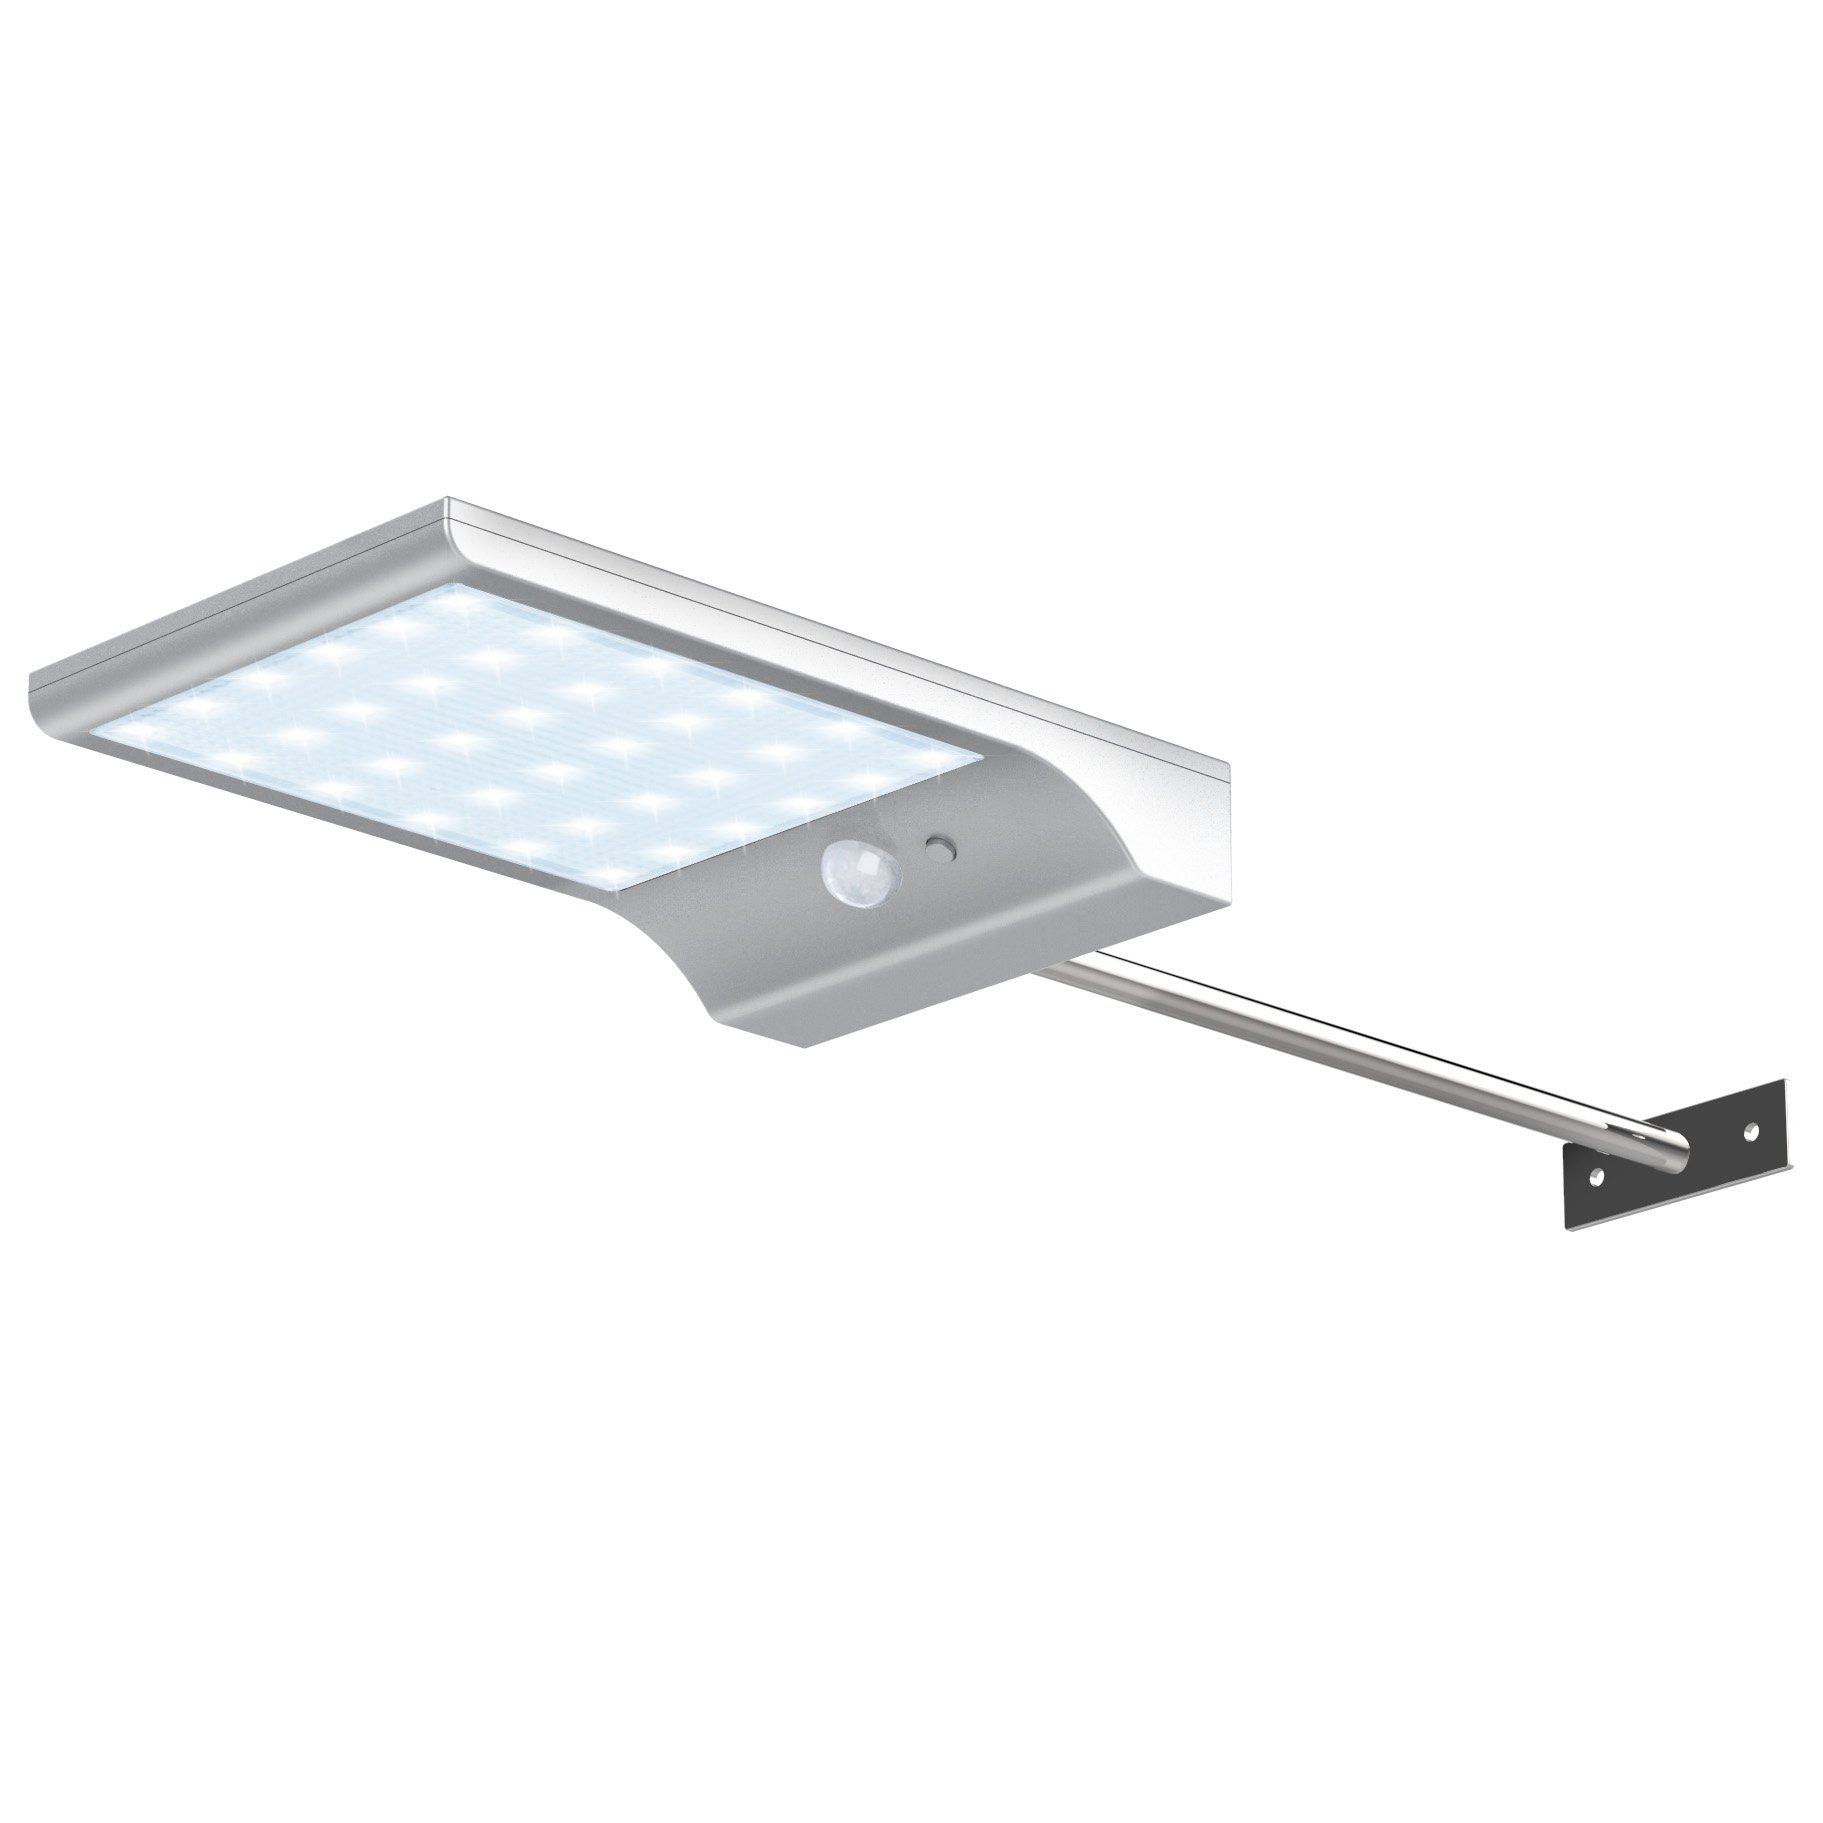 Innogear Solar Gutter Lights With Mounting Pole Outdoor Motion Sensor Detecto.. 14